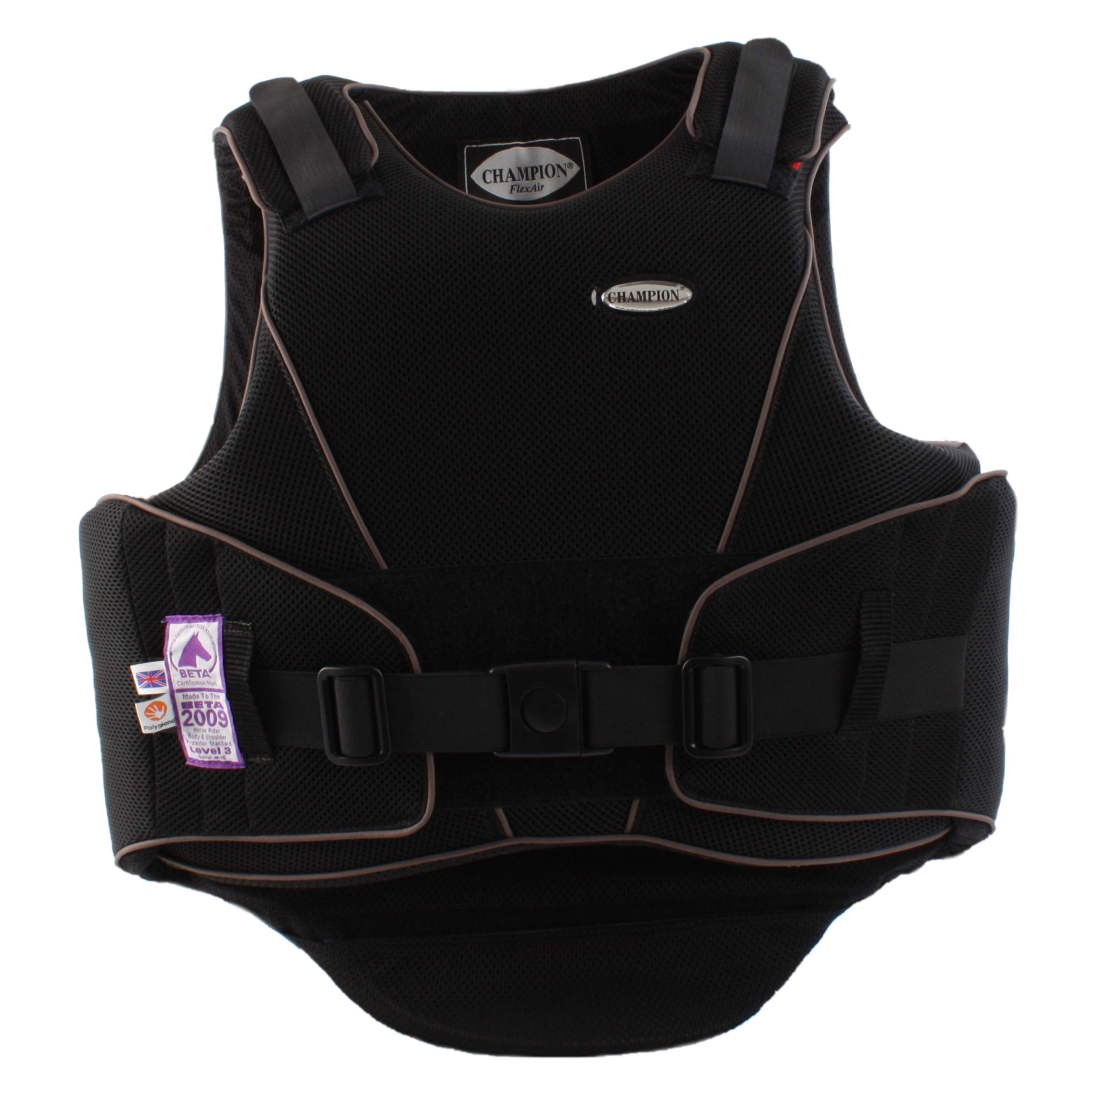 Champion Body Protector